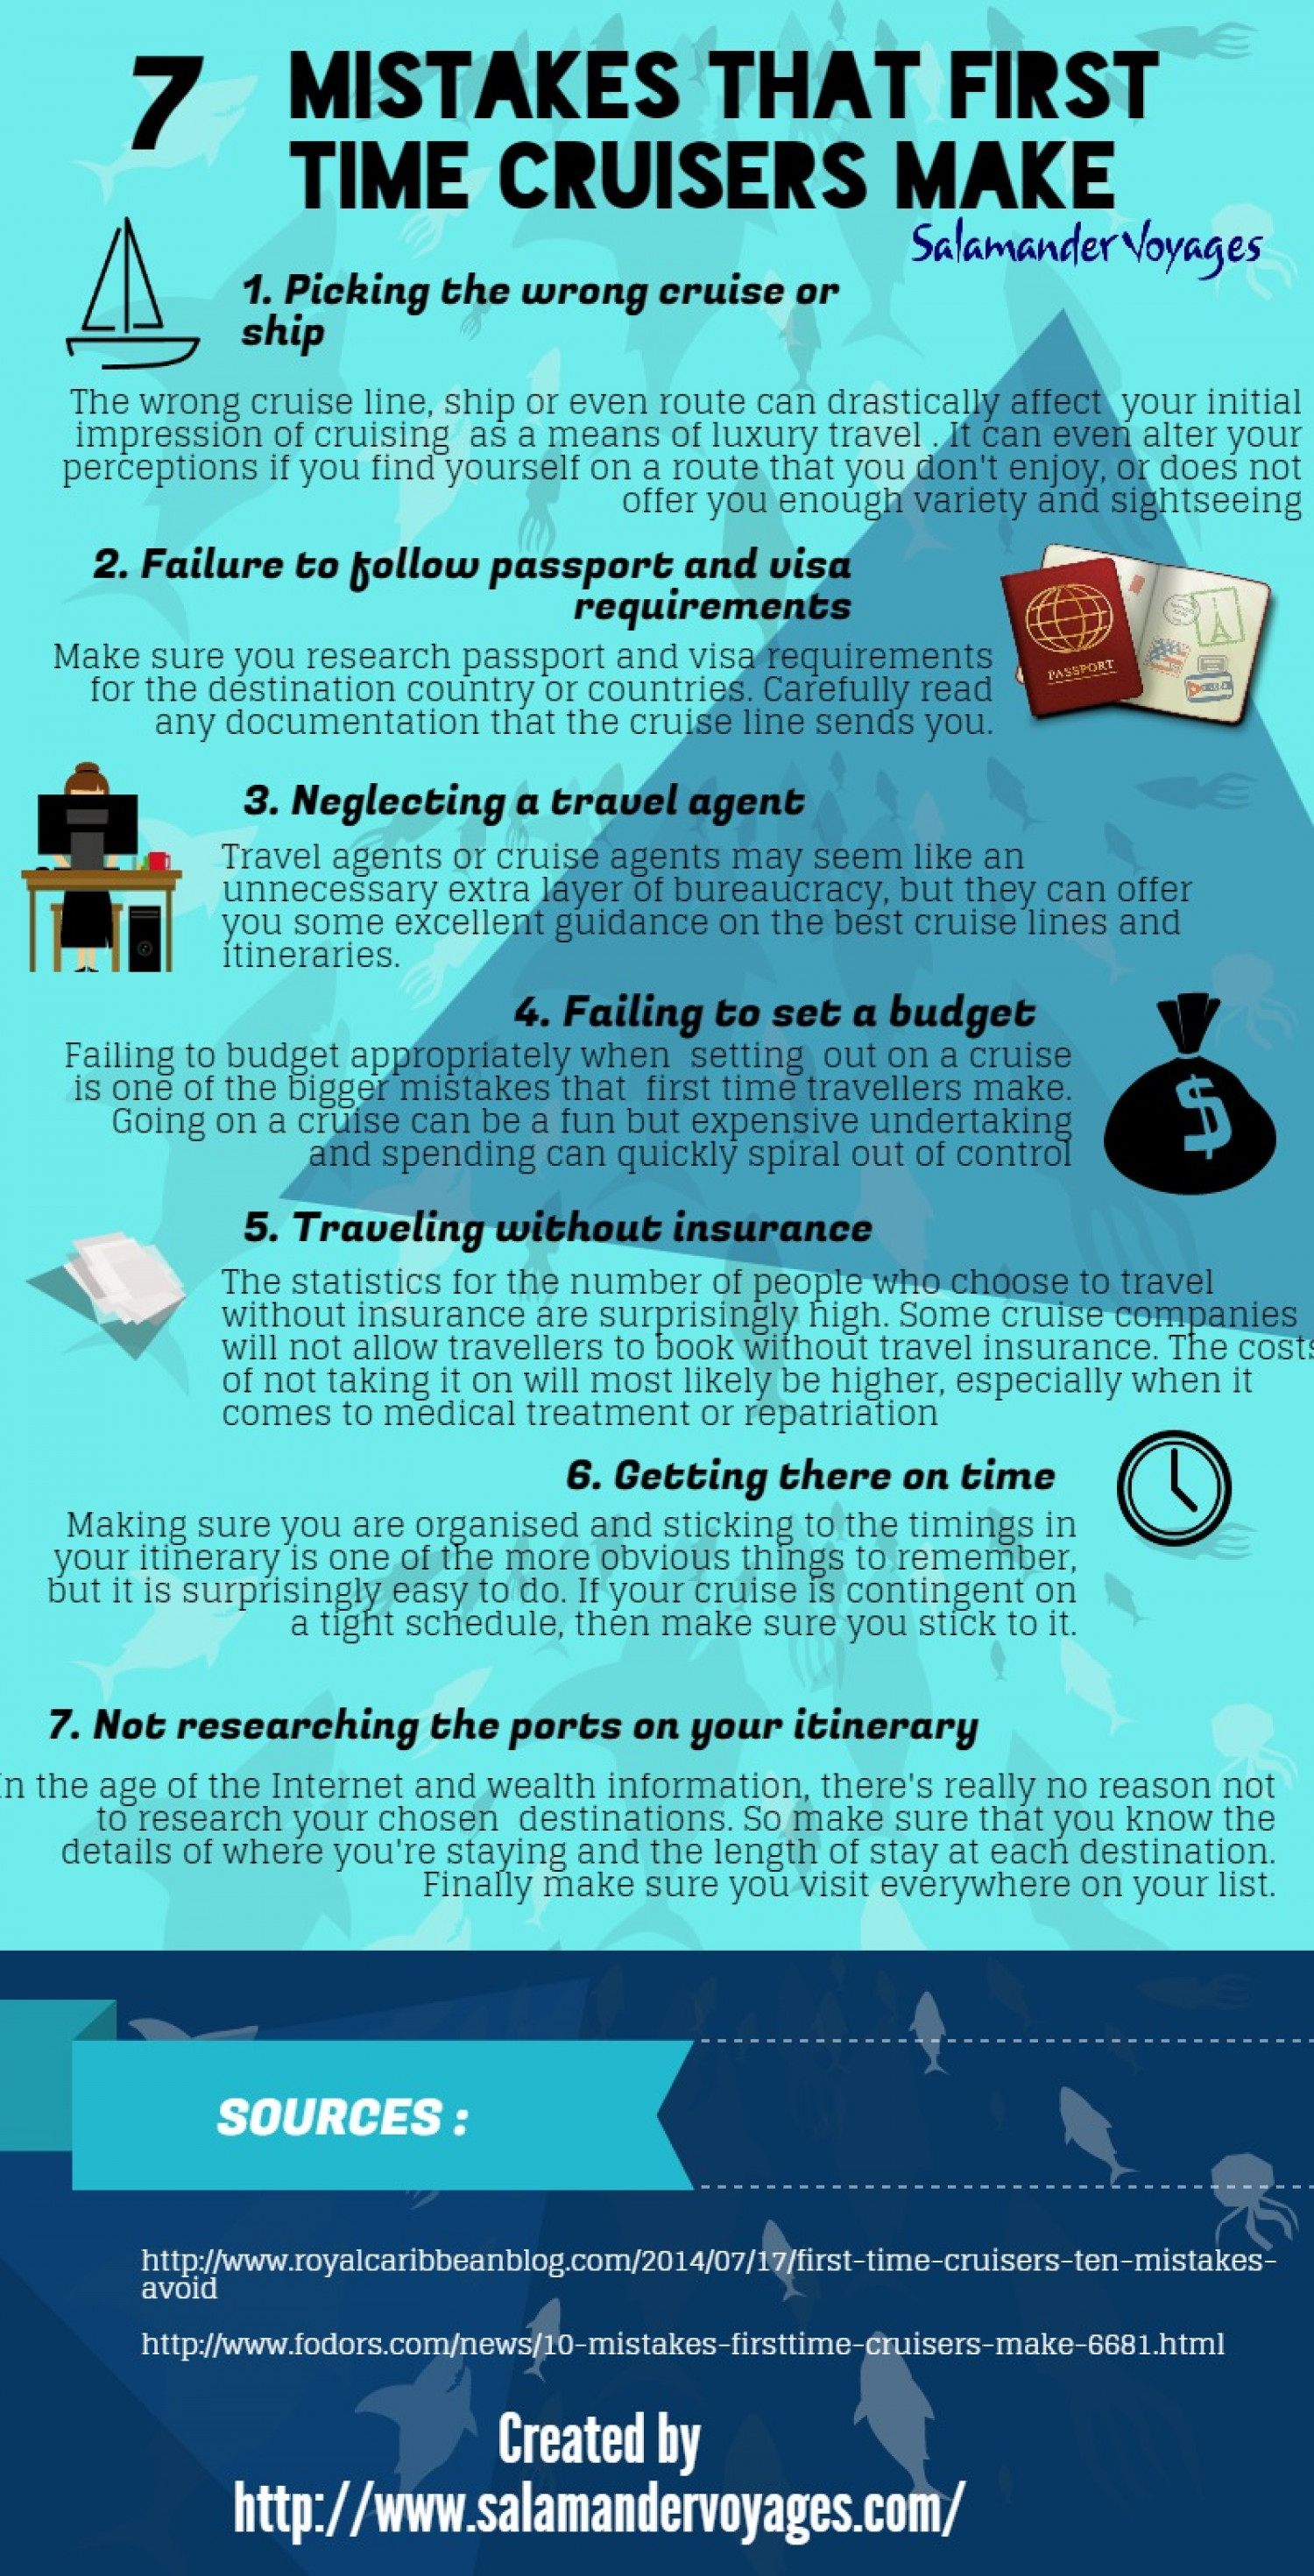 7 Mistakes That First Time Cruisers Make Infographic